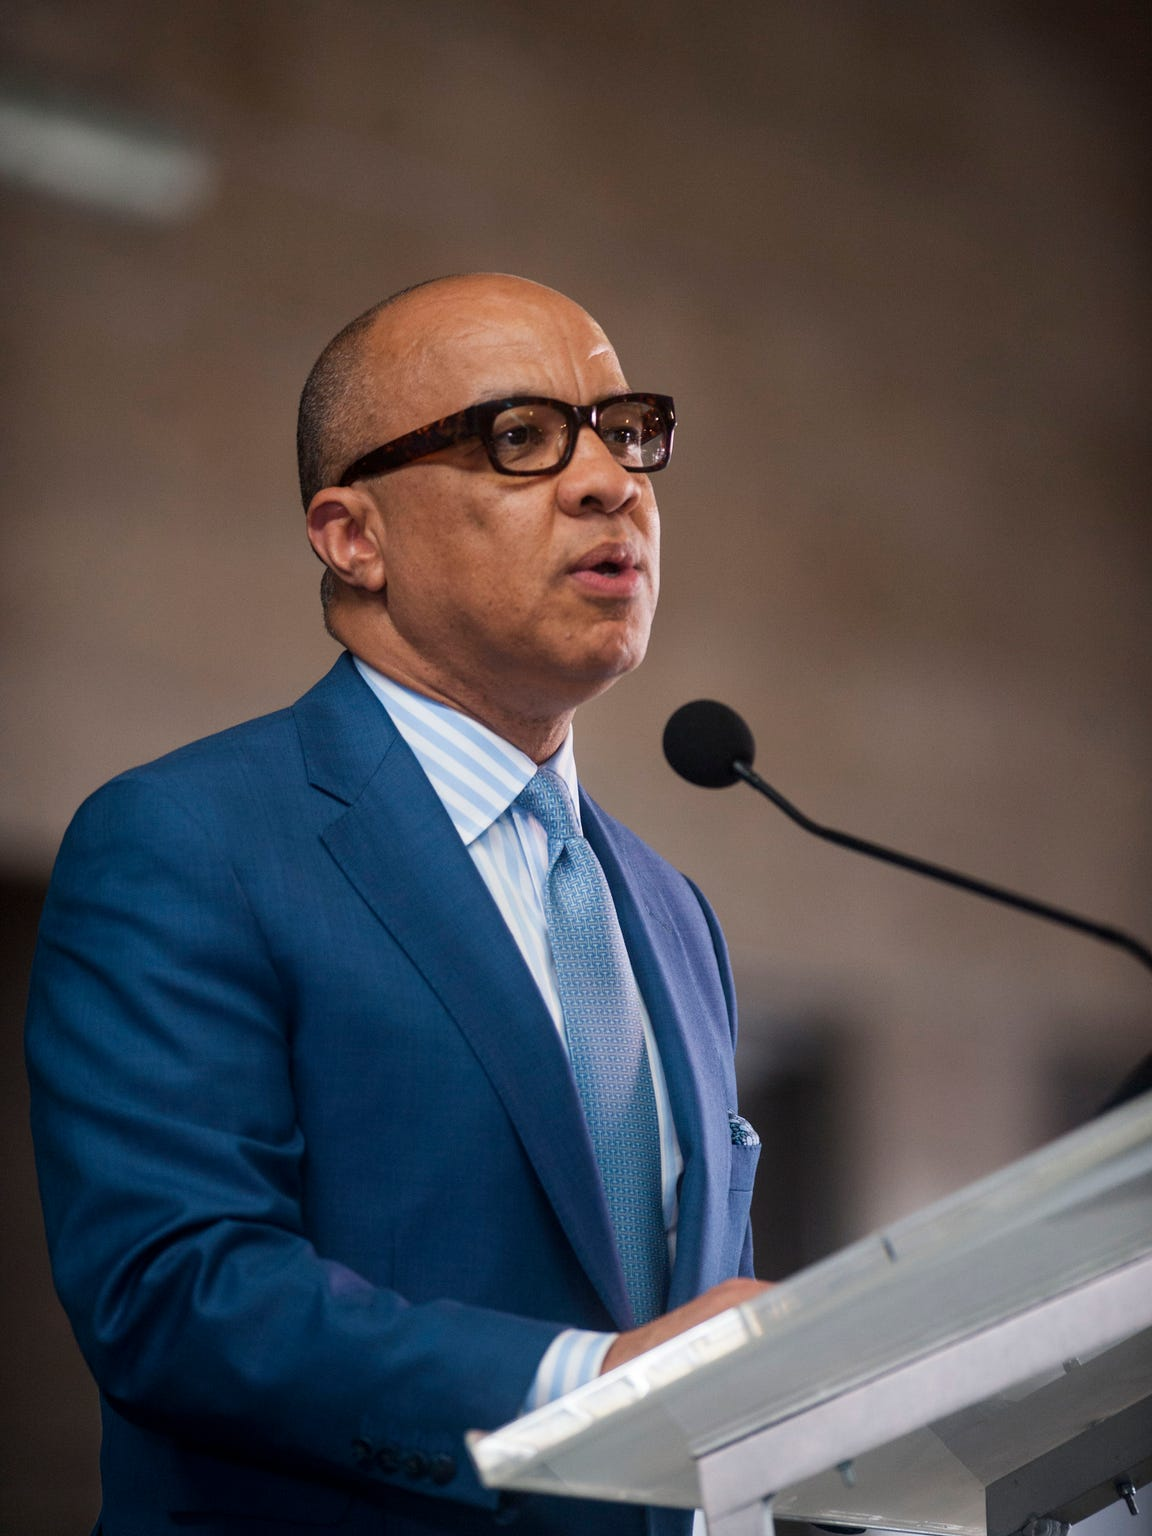 Ford Foundation President Darren Walker said he's trying to nudge major endowments, including universities, into rethinking their investment strategy.